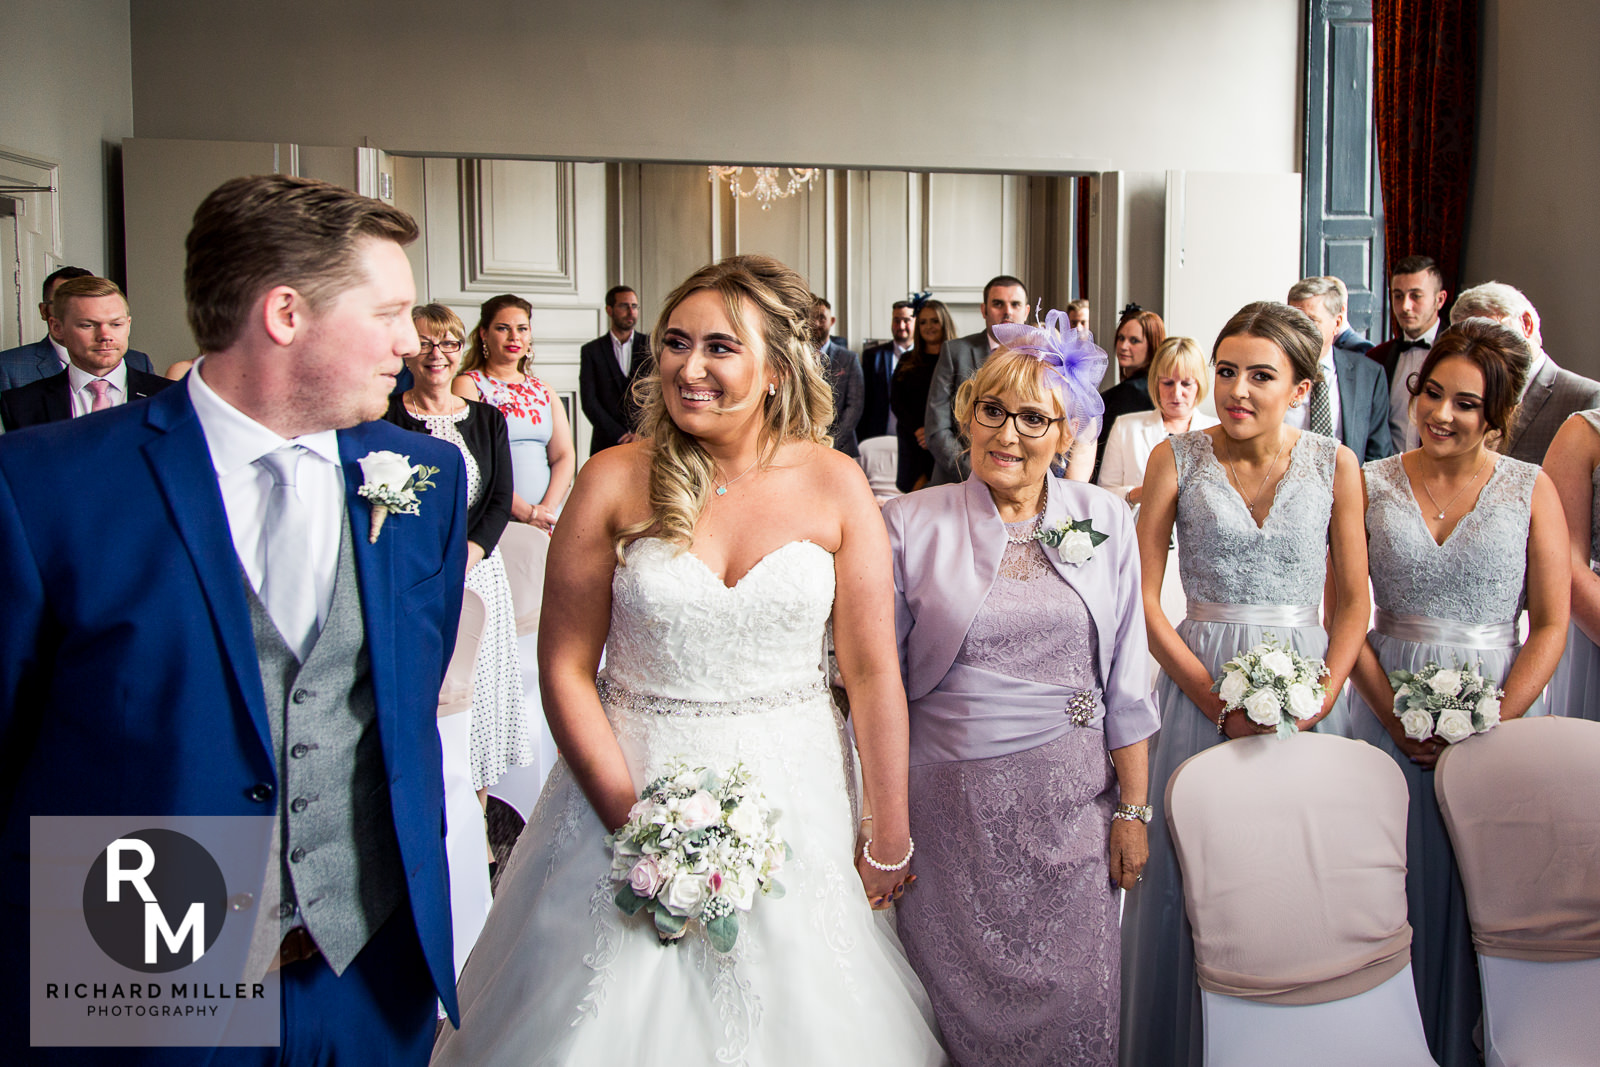 Dale Natalie Web 106 - An Awesome Chester Wedding at Oddfellows